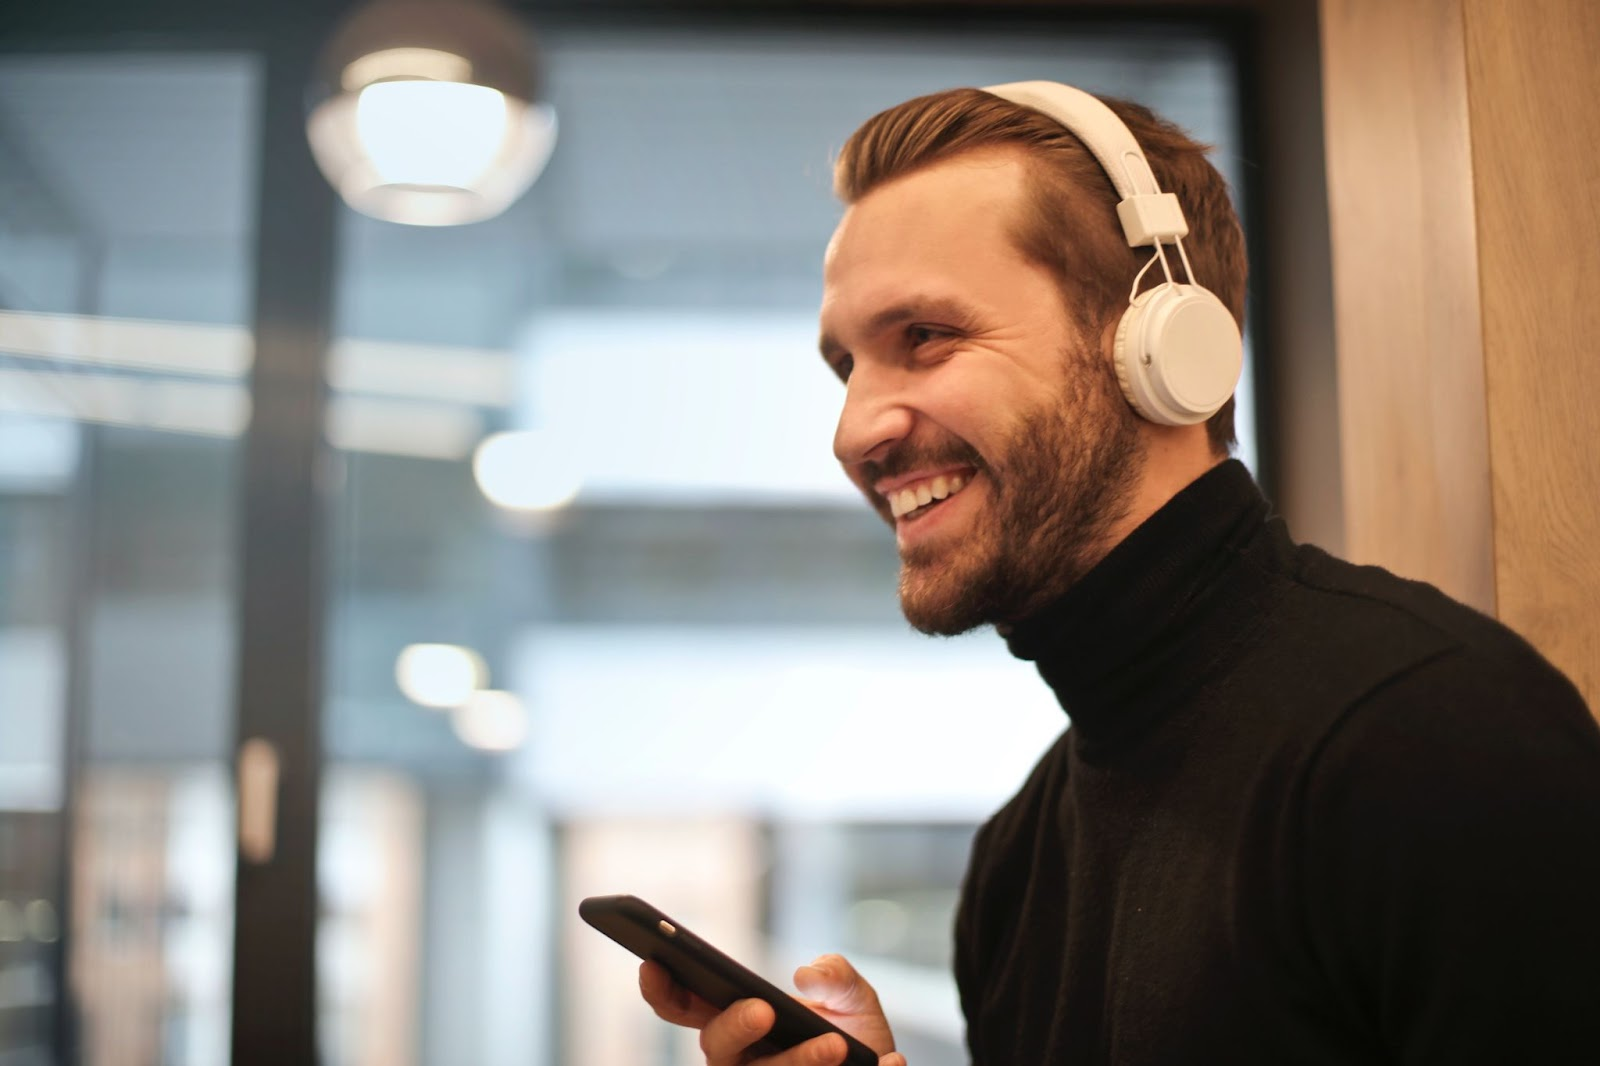 A picture of a man with headphones on, smiling and holding his phone in his hand: Getting your music on Spotify